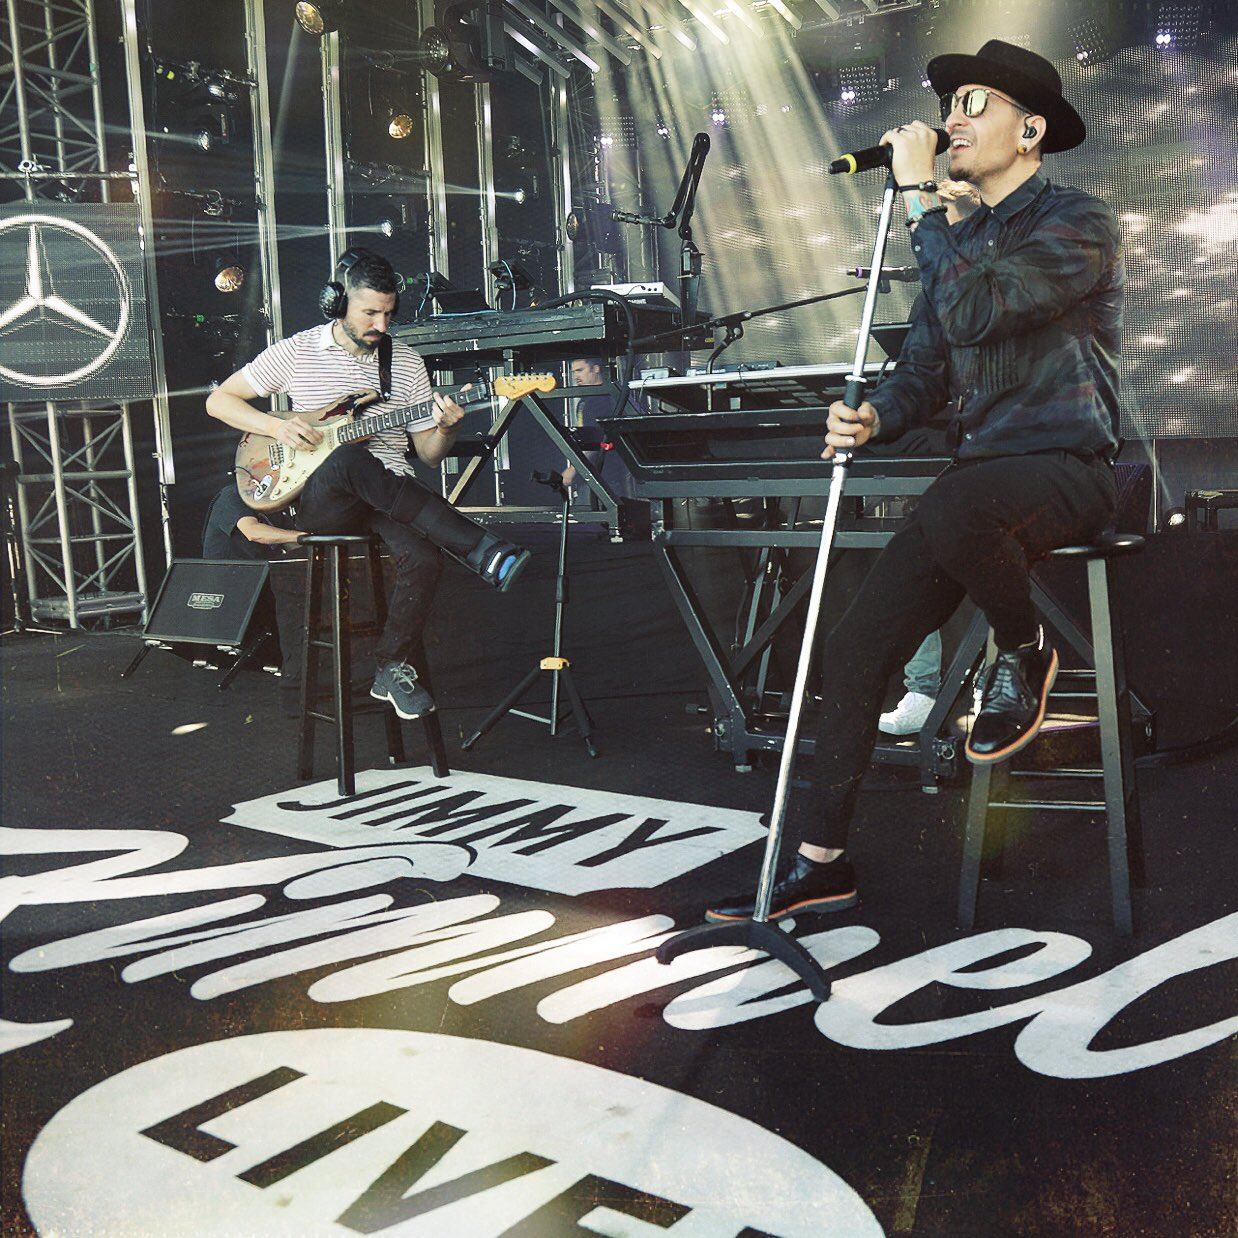 Sound check for our performance on @JimmyKimmelLive tonight on @ABCNetwork at 11:35/10:35c. #OneMoreLight �� https://t.co/WnjkHC45Ei